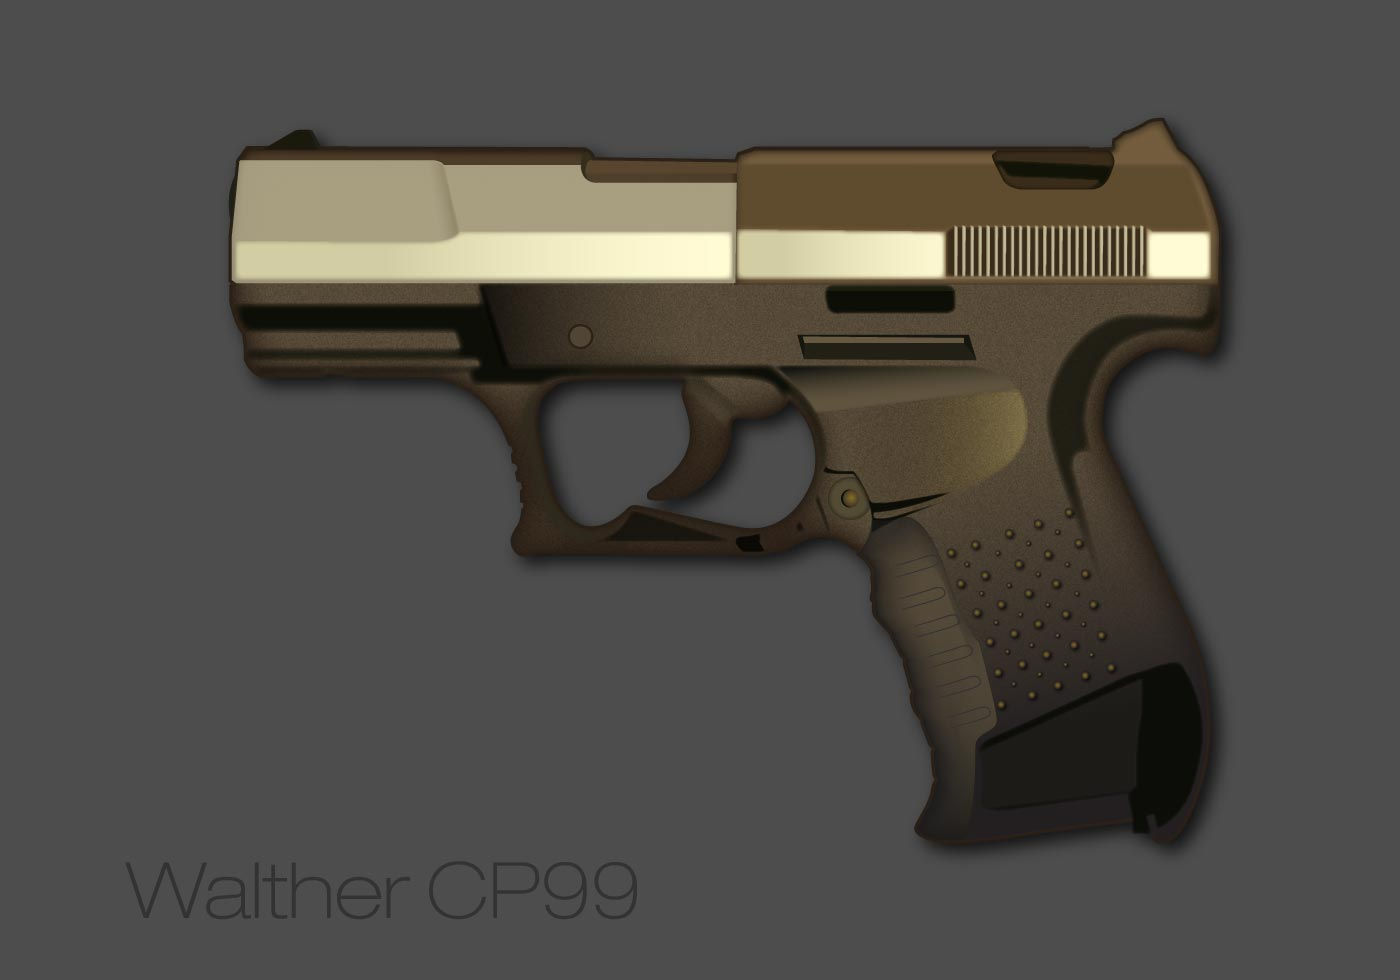 Free Walther Pistol Vector